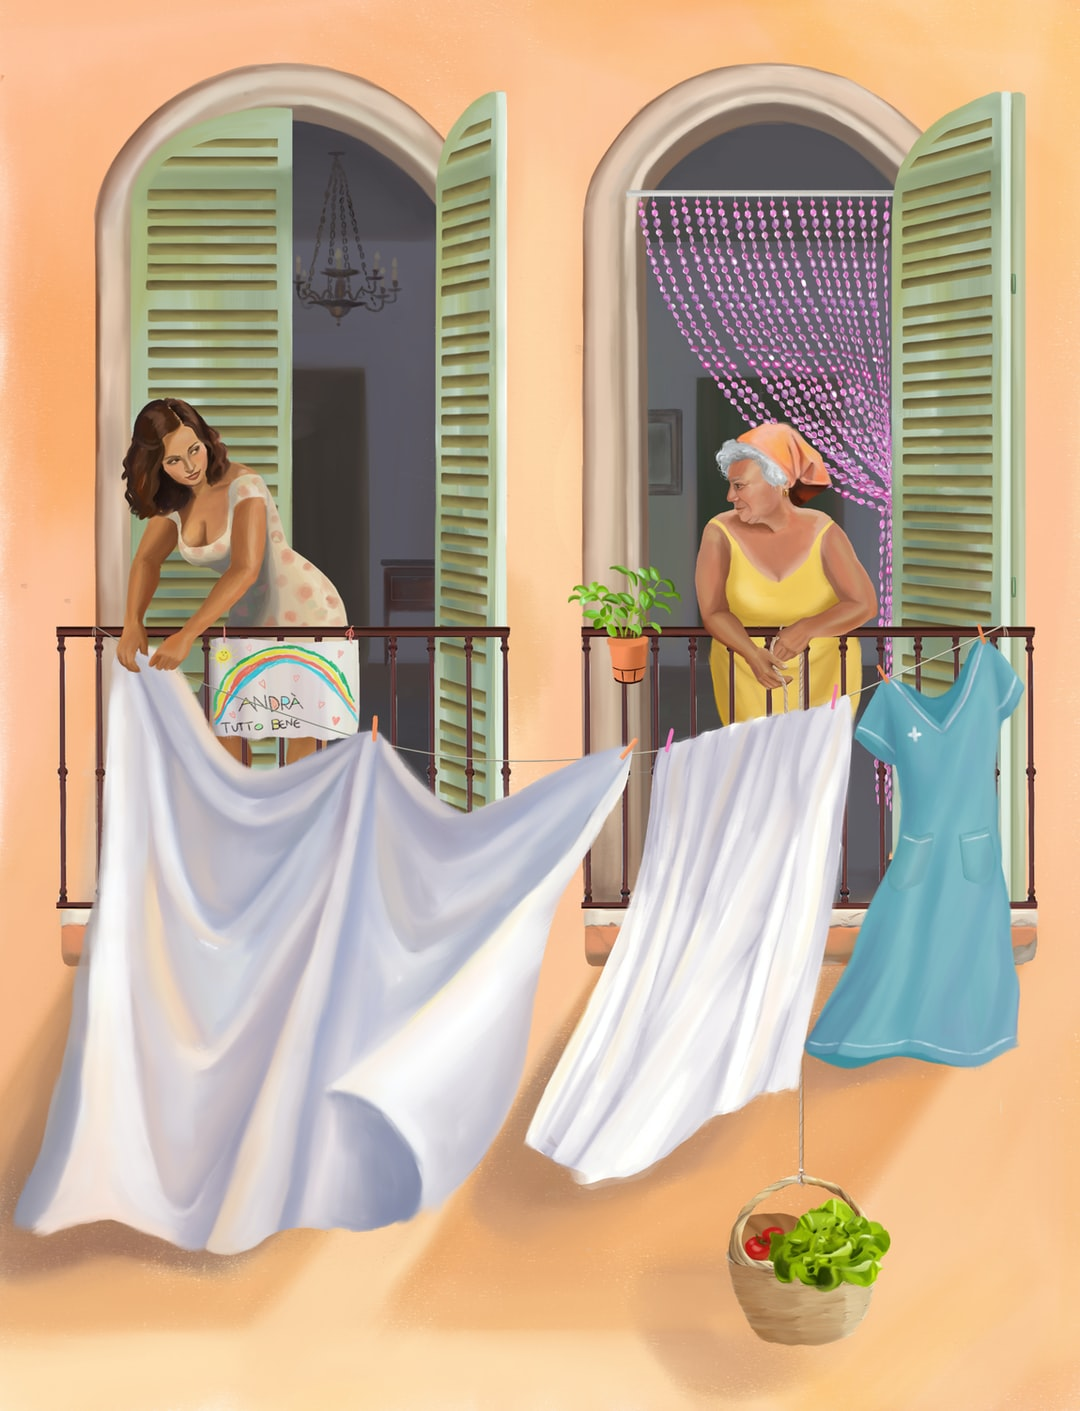 """Tutto Andrà Bene. This illustration was made to highlight the strong sense of community in Italy, which has been reinforced through facing this crises together. In Naples, the """"Panaro"""", an invention of a basket tired to a string which people dangle out of their window to collect their groceries and avoid going down the stairs, has become indispensable for the most vulnerable people of the community. Image created by Lélie Lesage. Submitted for United Nations Global Call Out To Creatives - help stop the spread of COVID-19."""